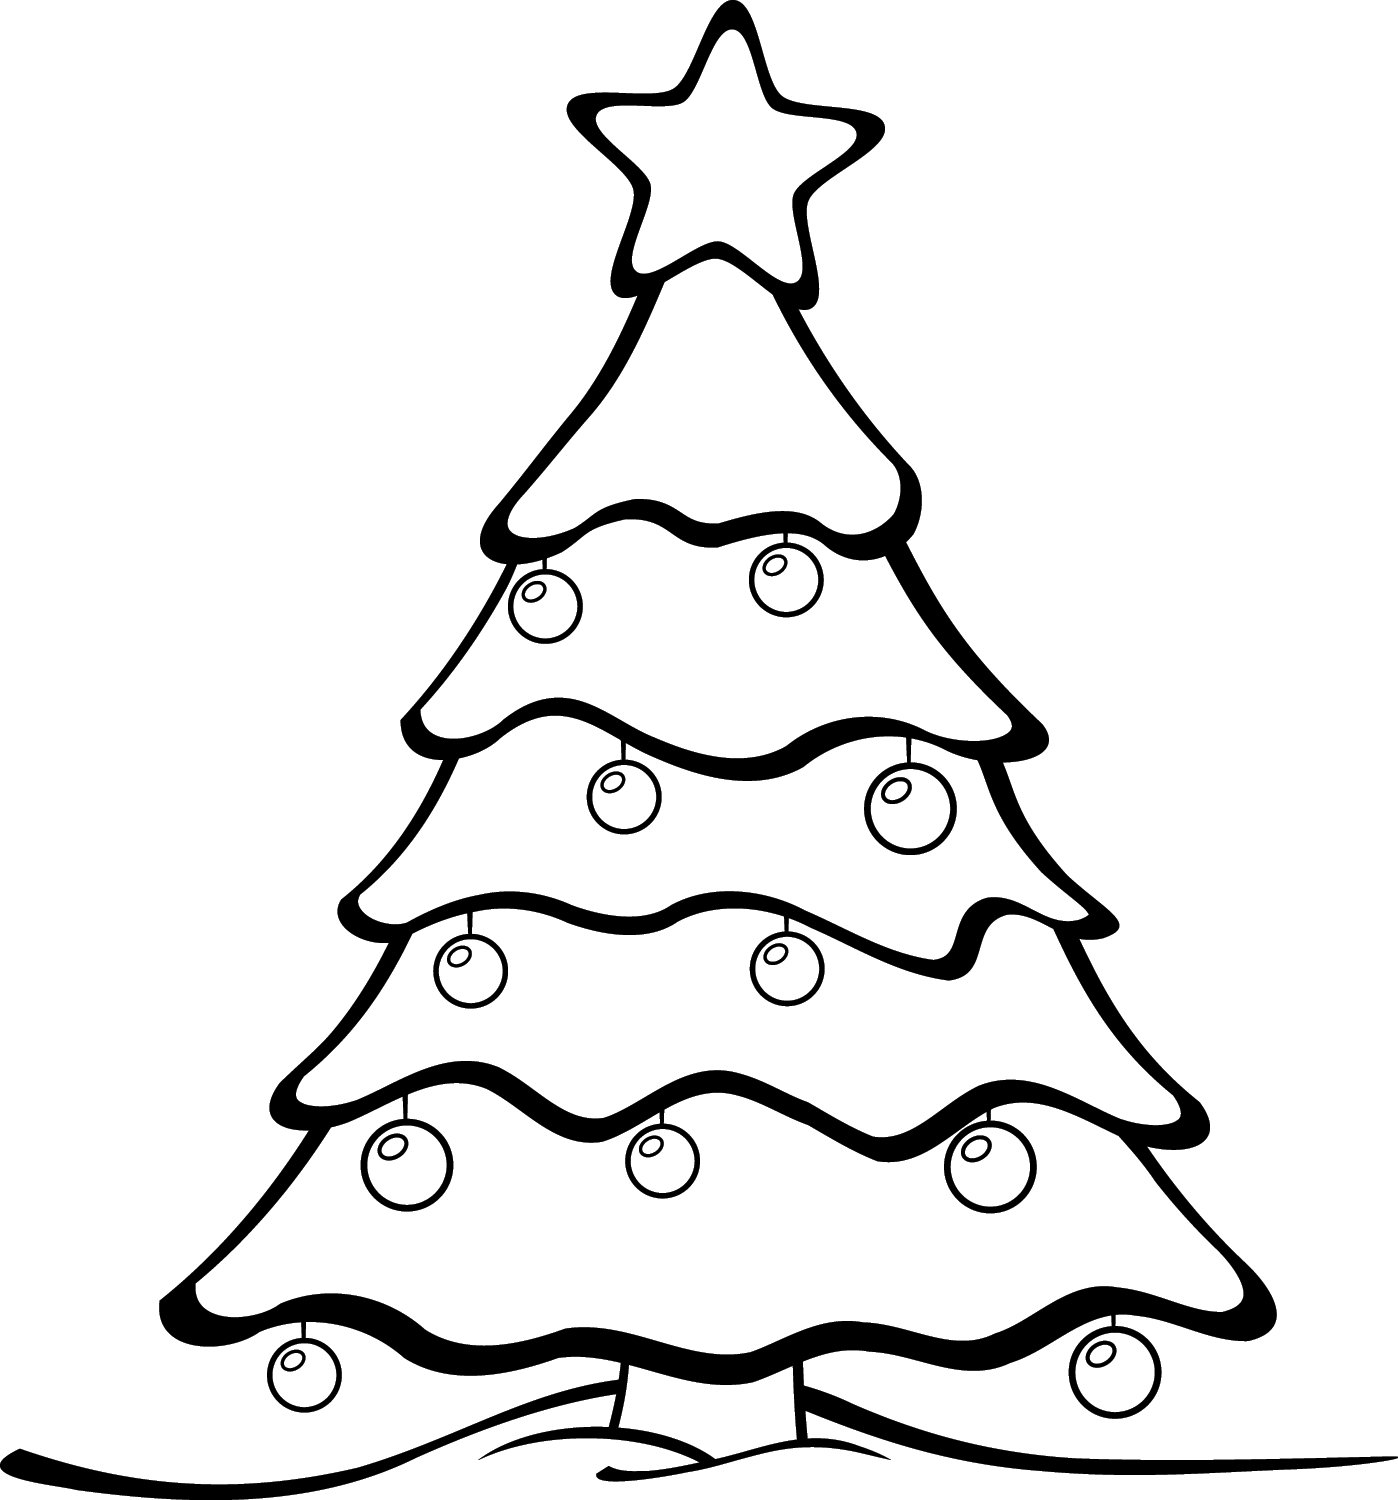 15 Black And White Christmas Graphics Images